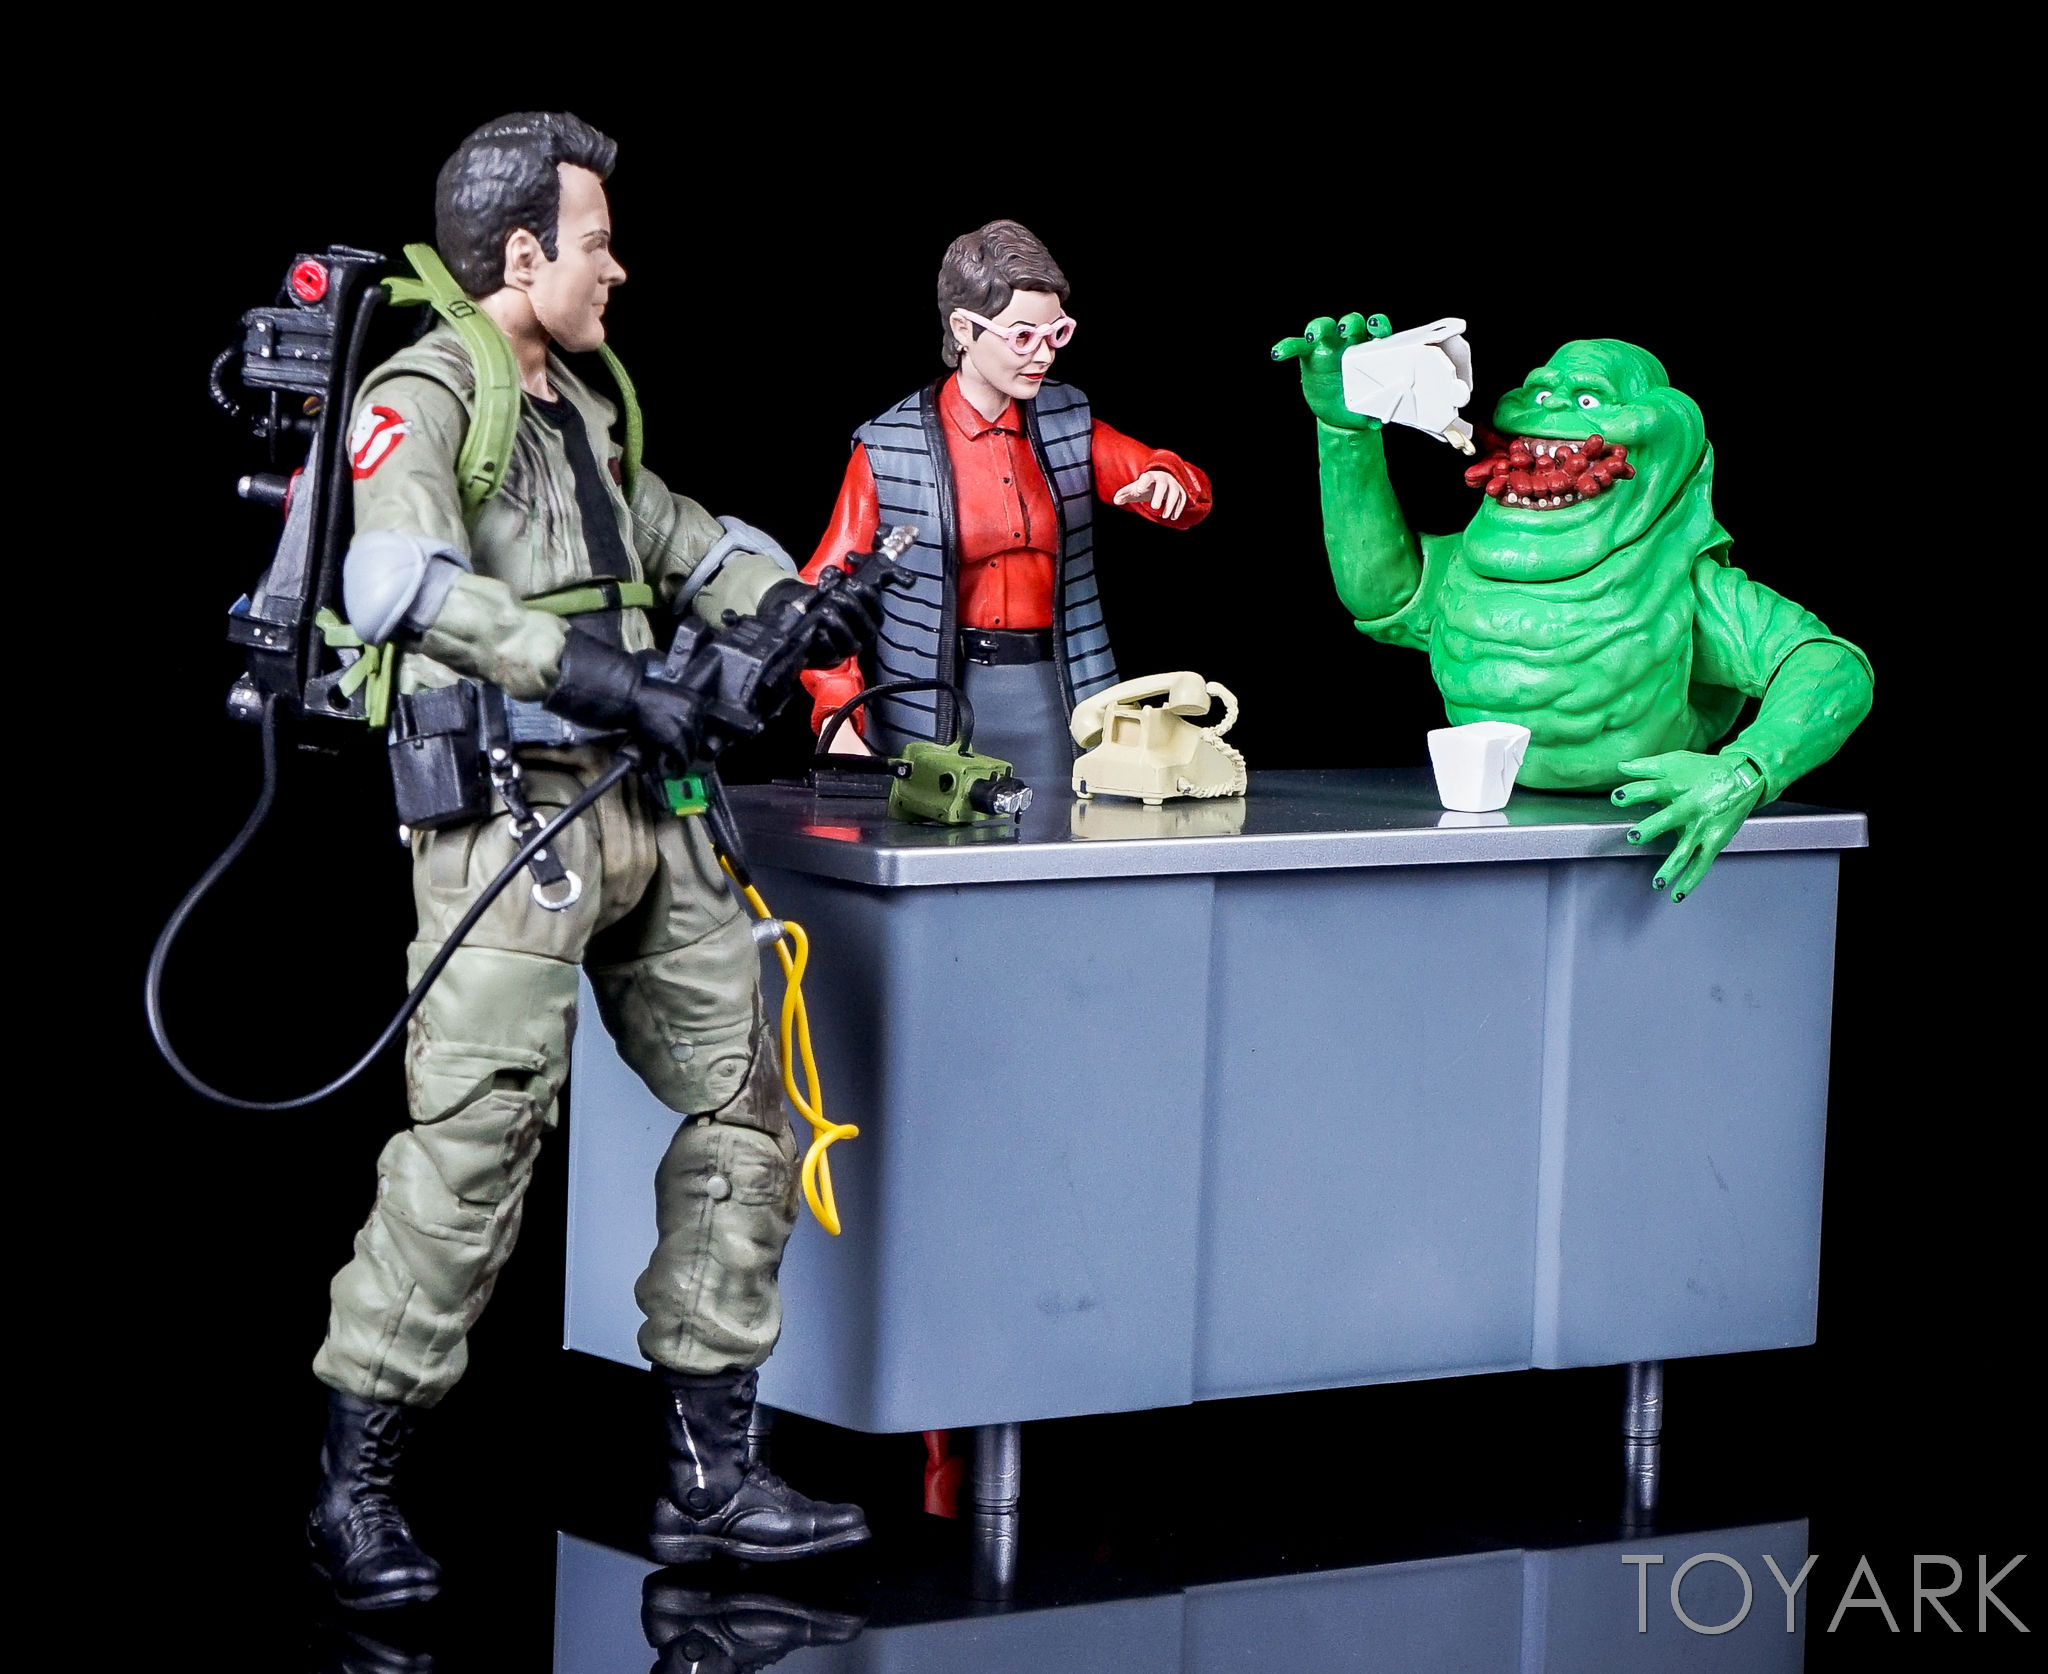 http://news.toyark.com/wp-content/uploads/sites/4/2016/10/Ghostbusters-Select-Series-3-DST-071.jpg